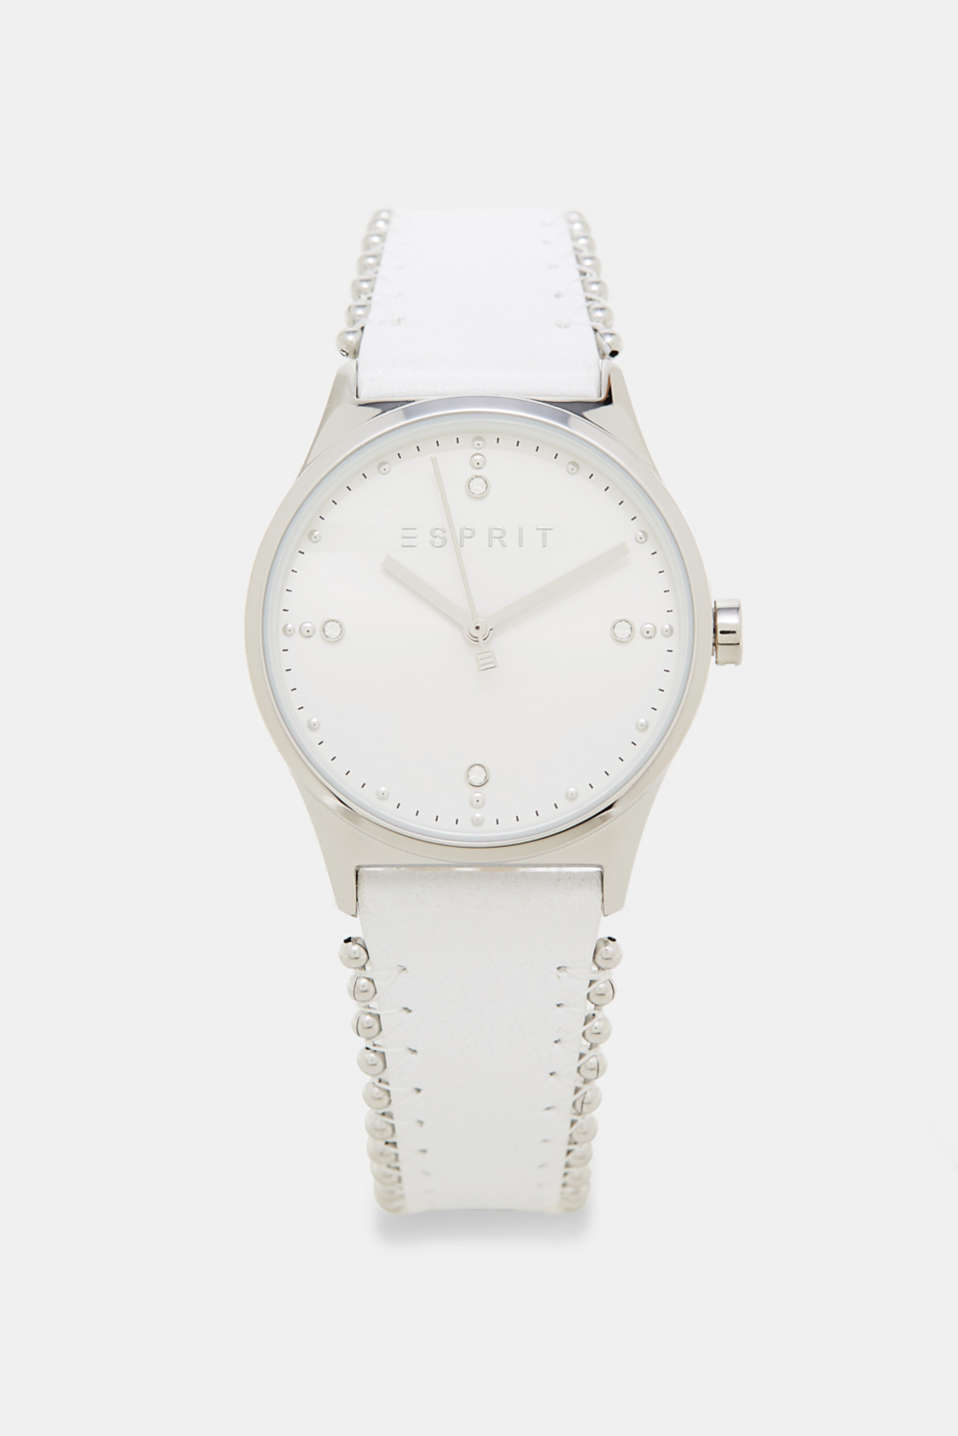 Esprit - Watch + leather wrist strap + metal beads